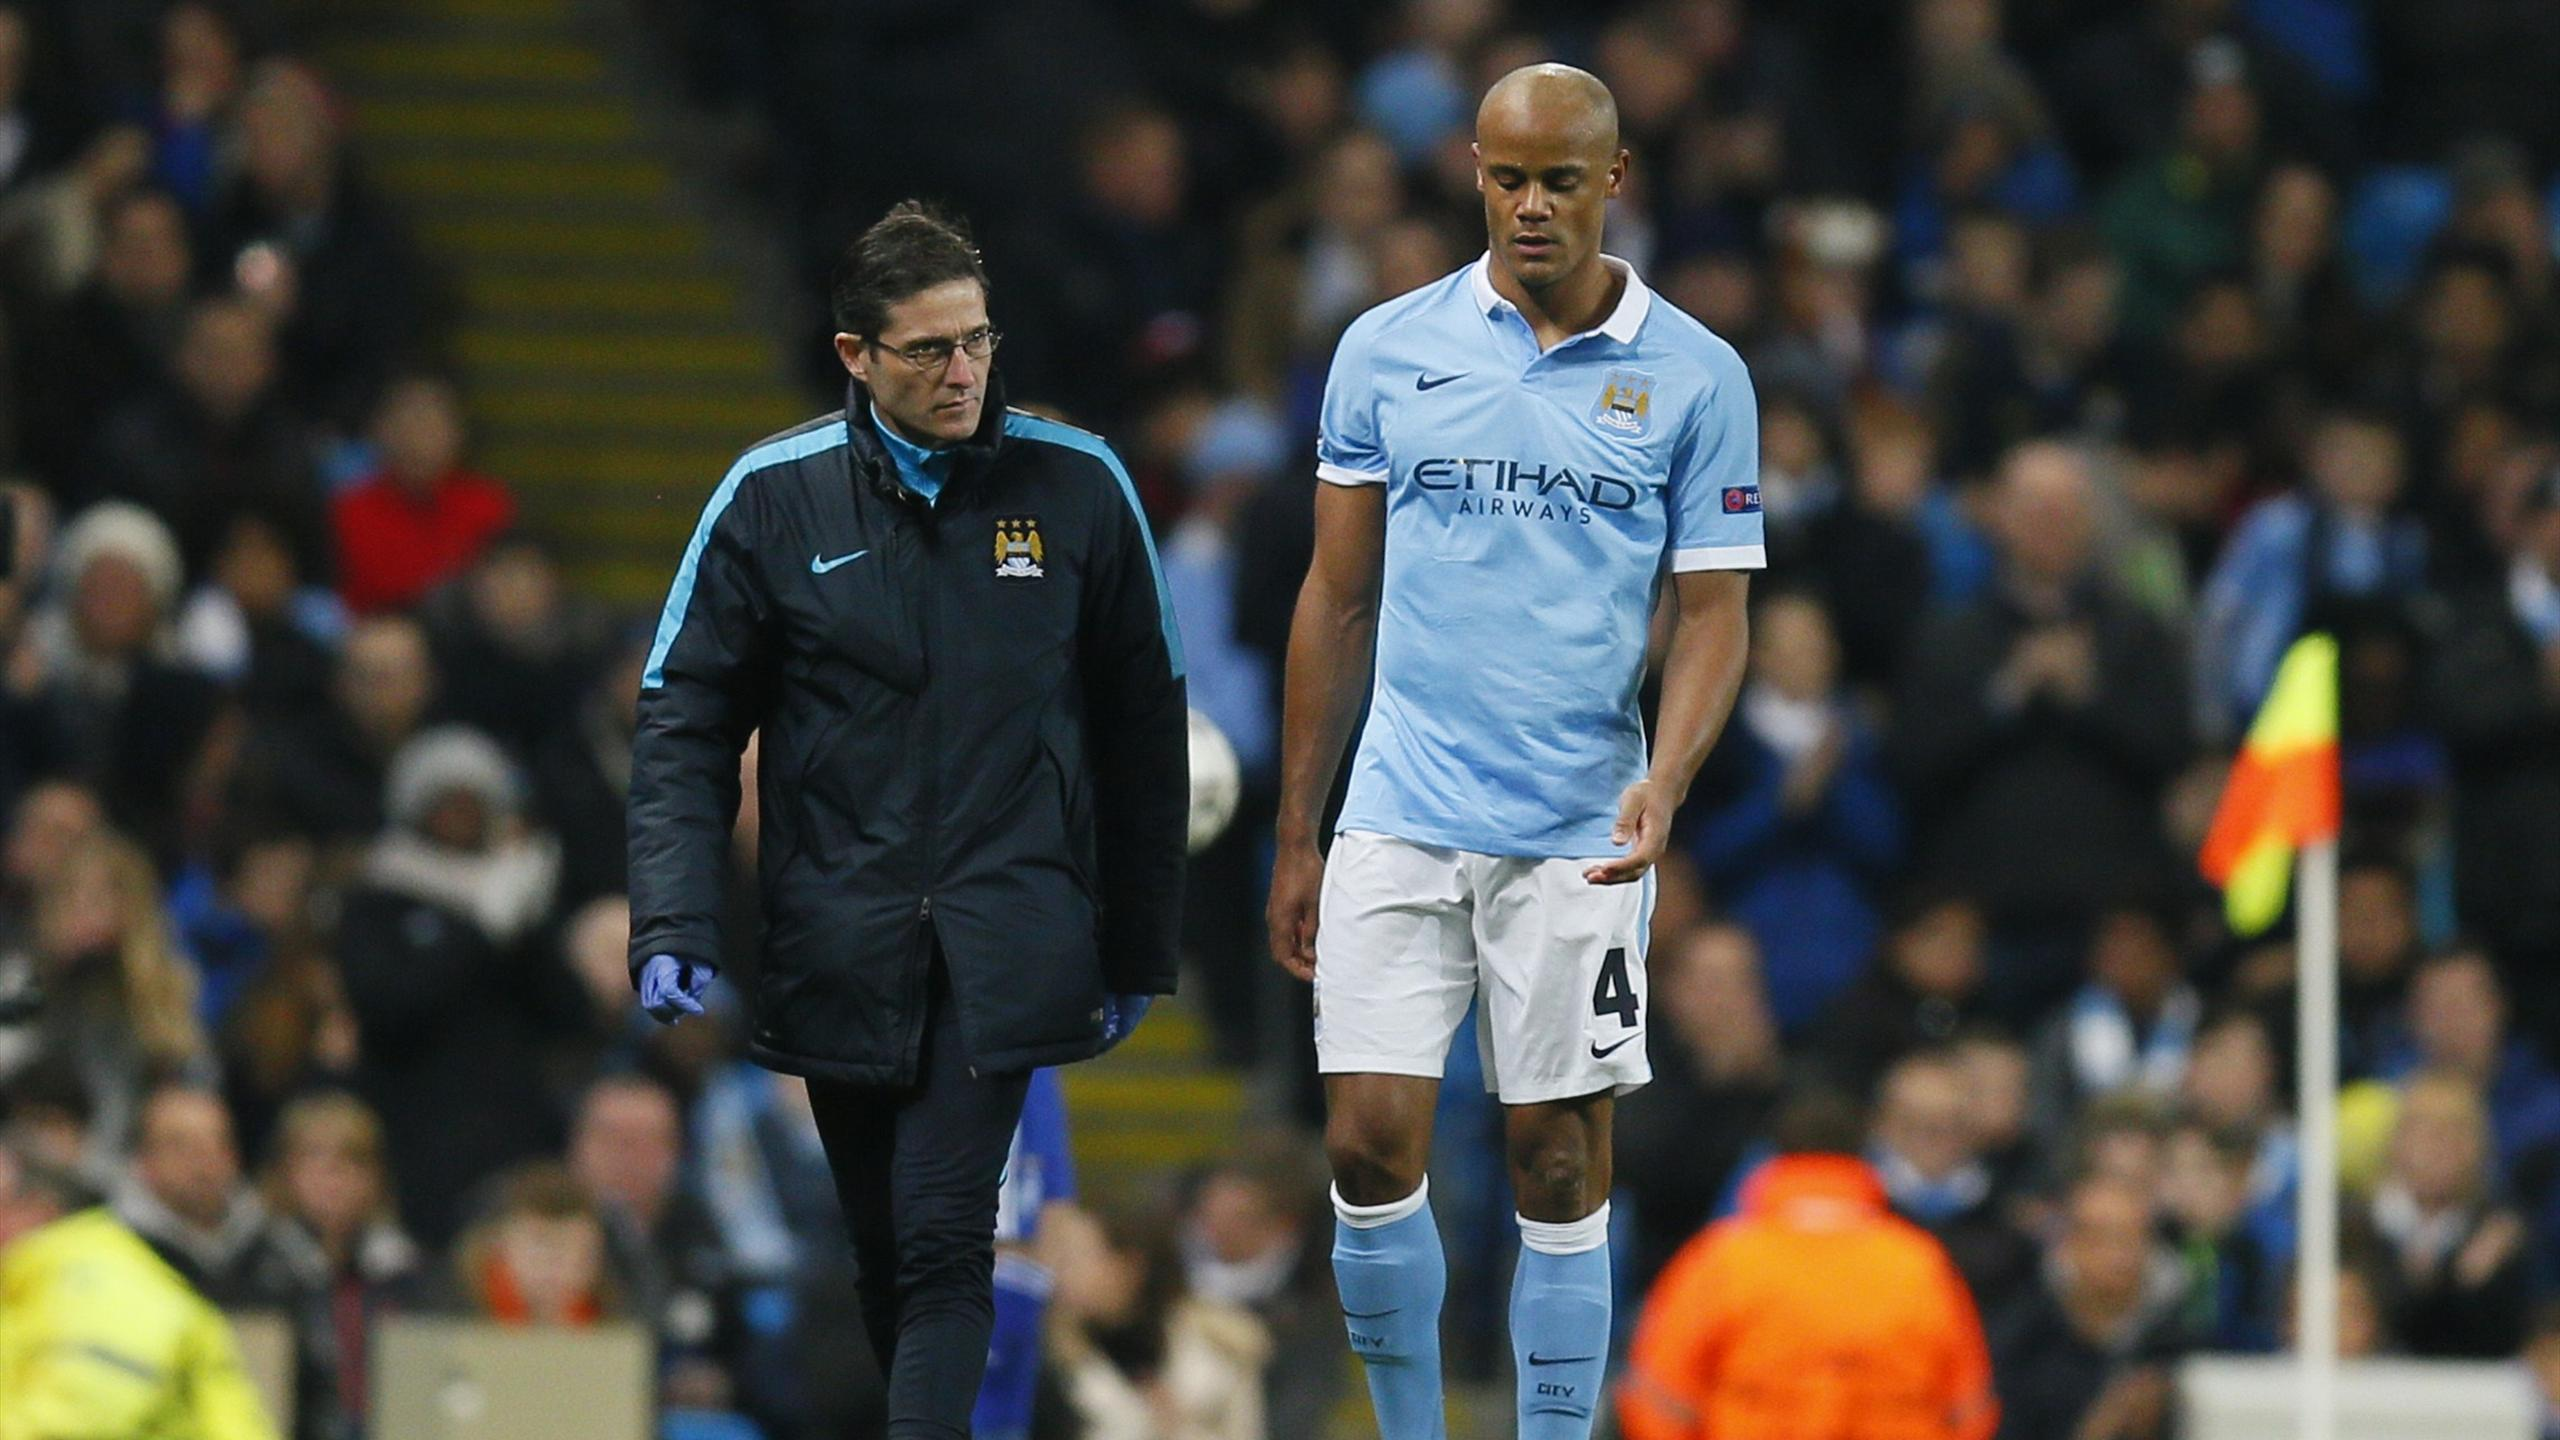 Manchester City's Vincent Kompany looks dejected as he walks off to be substituted after sustaining an injury